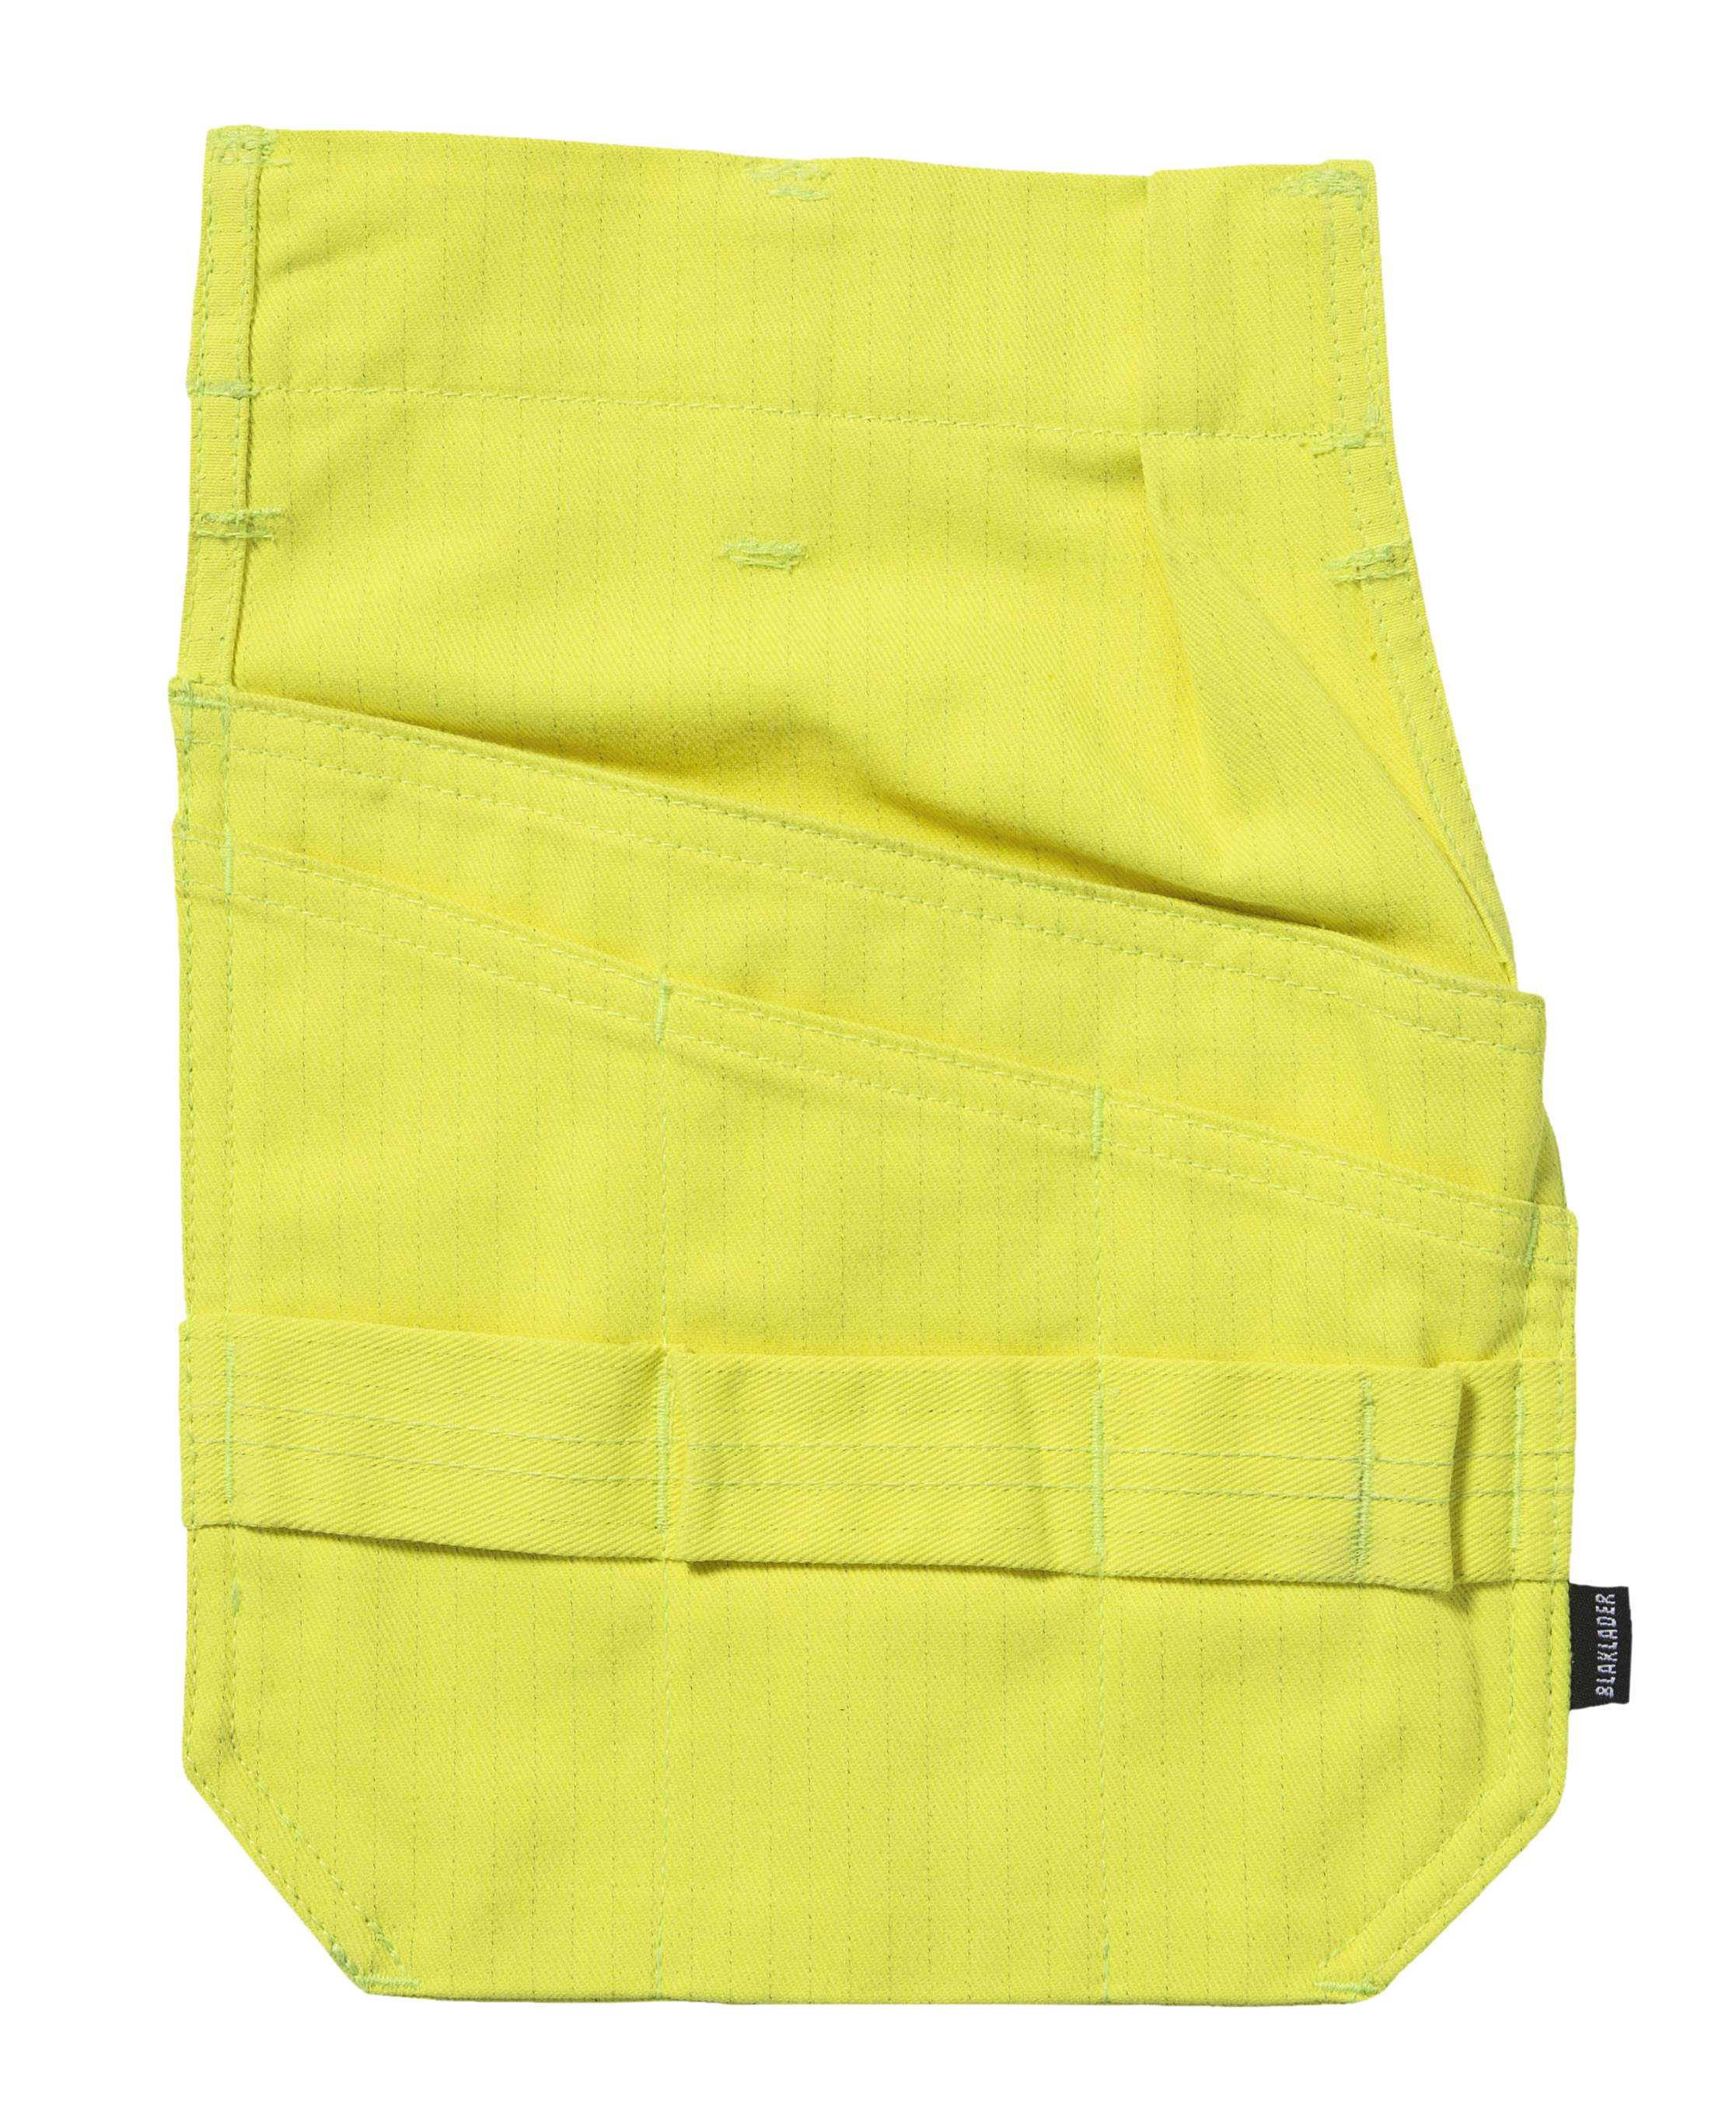 Blaklader Swingpockets 15161514 Vlamvertragend geel(3300)